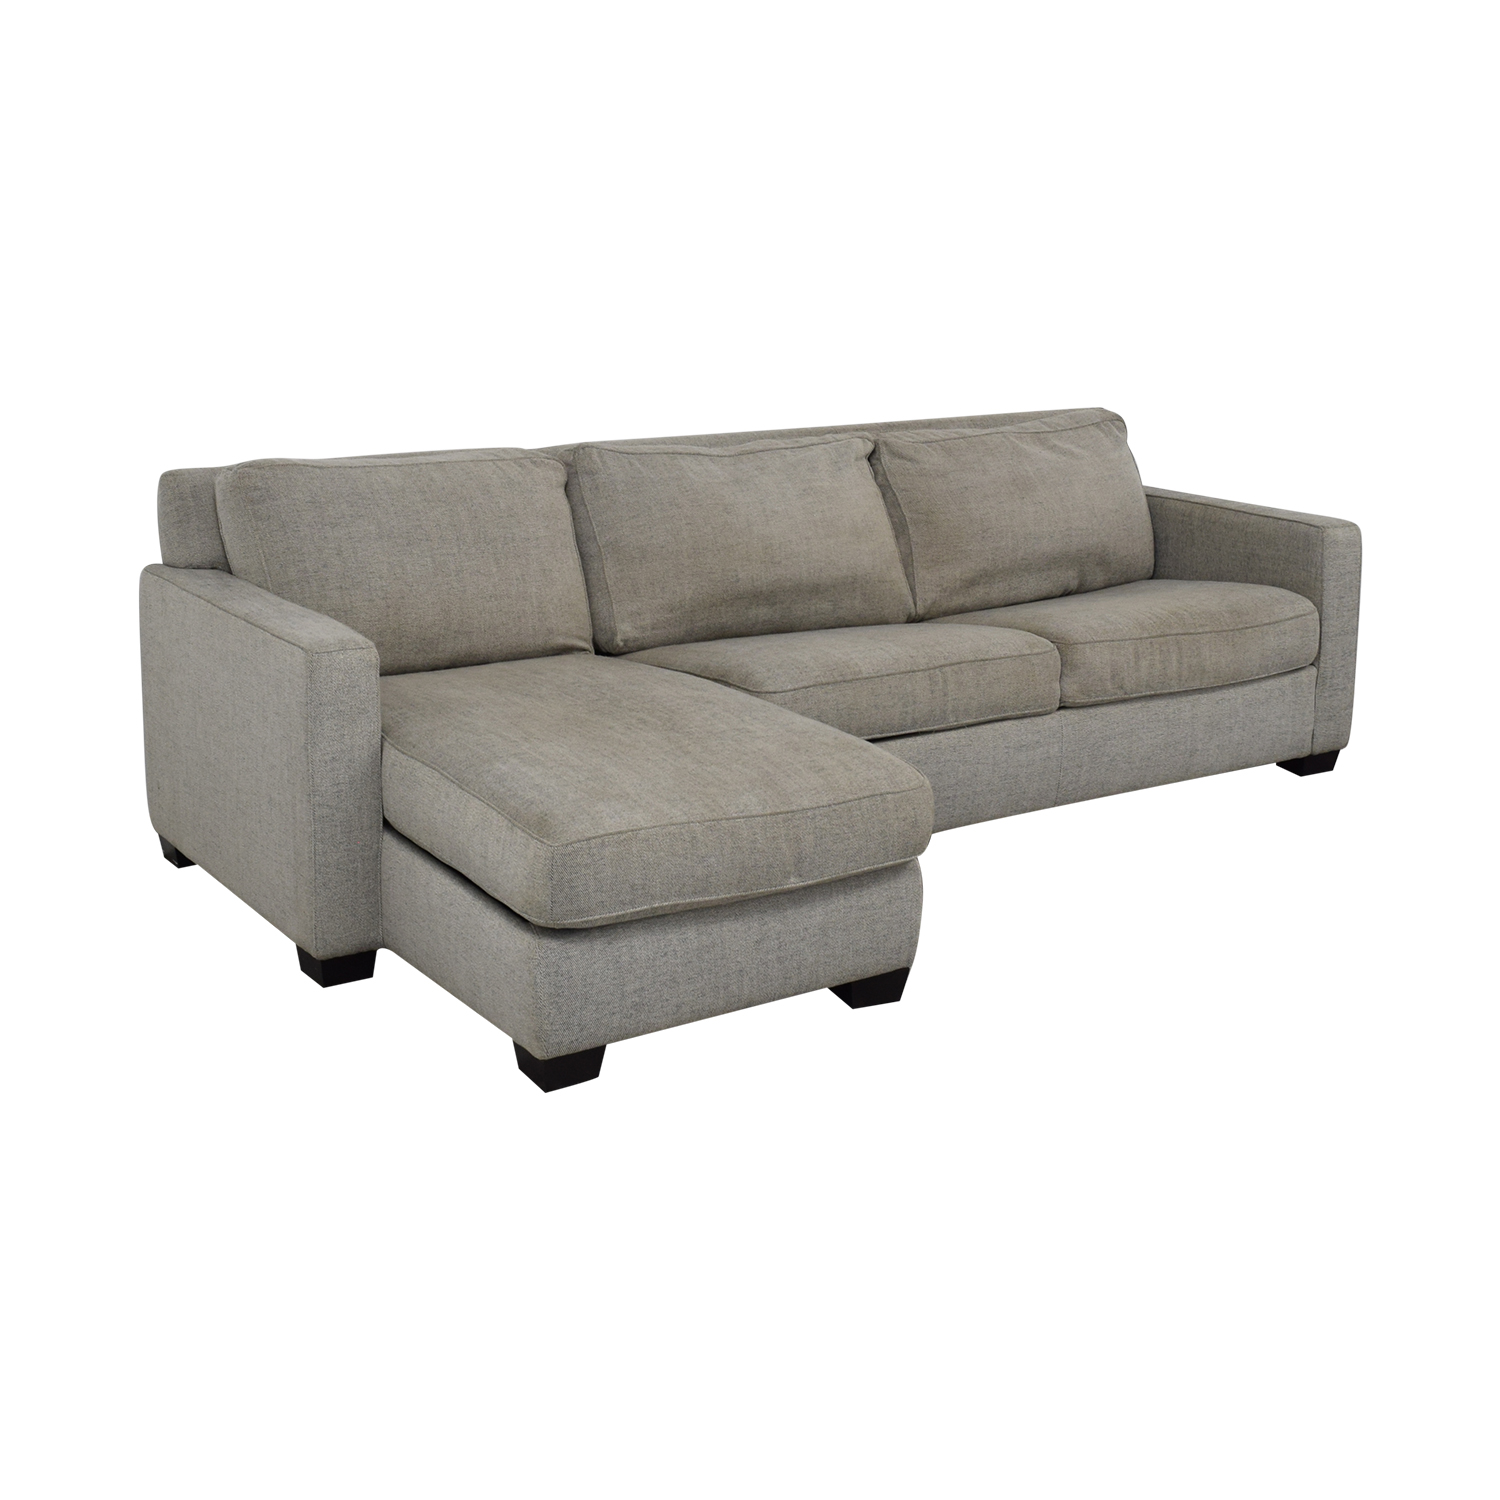 West Elm West Elm Henry Sleeper Sectional Sofa with Storage Sofas